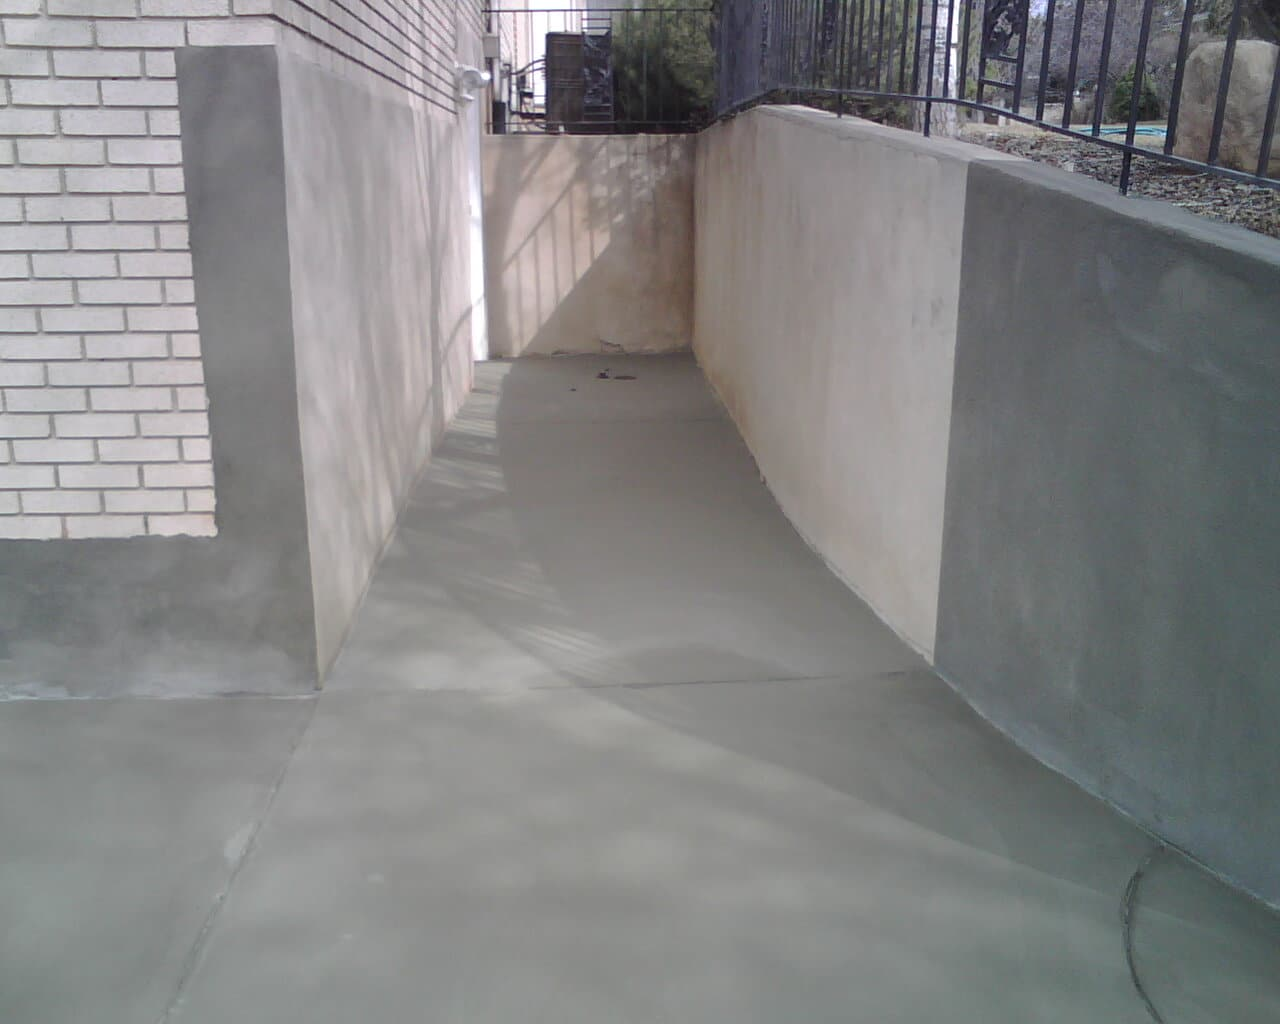 Driveway Overlay In Plain Gray With Retaining Wall ...